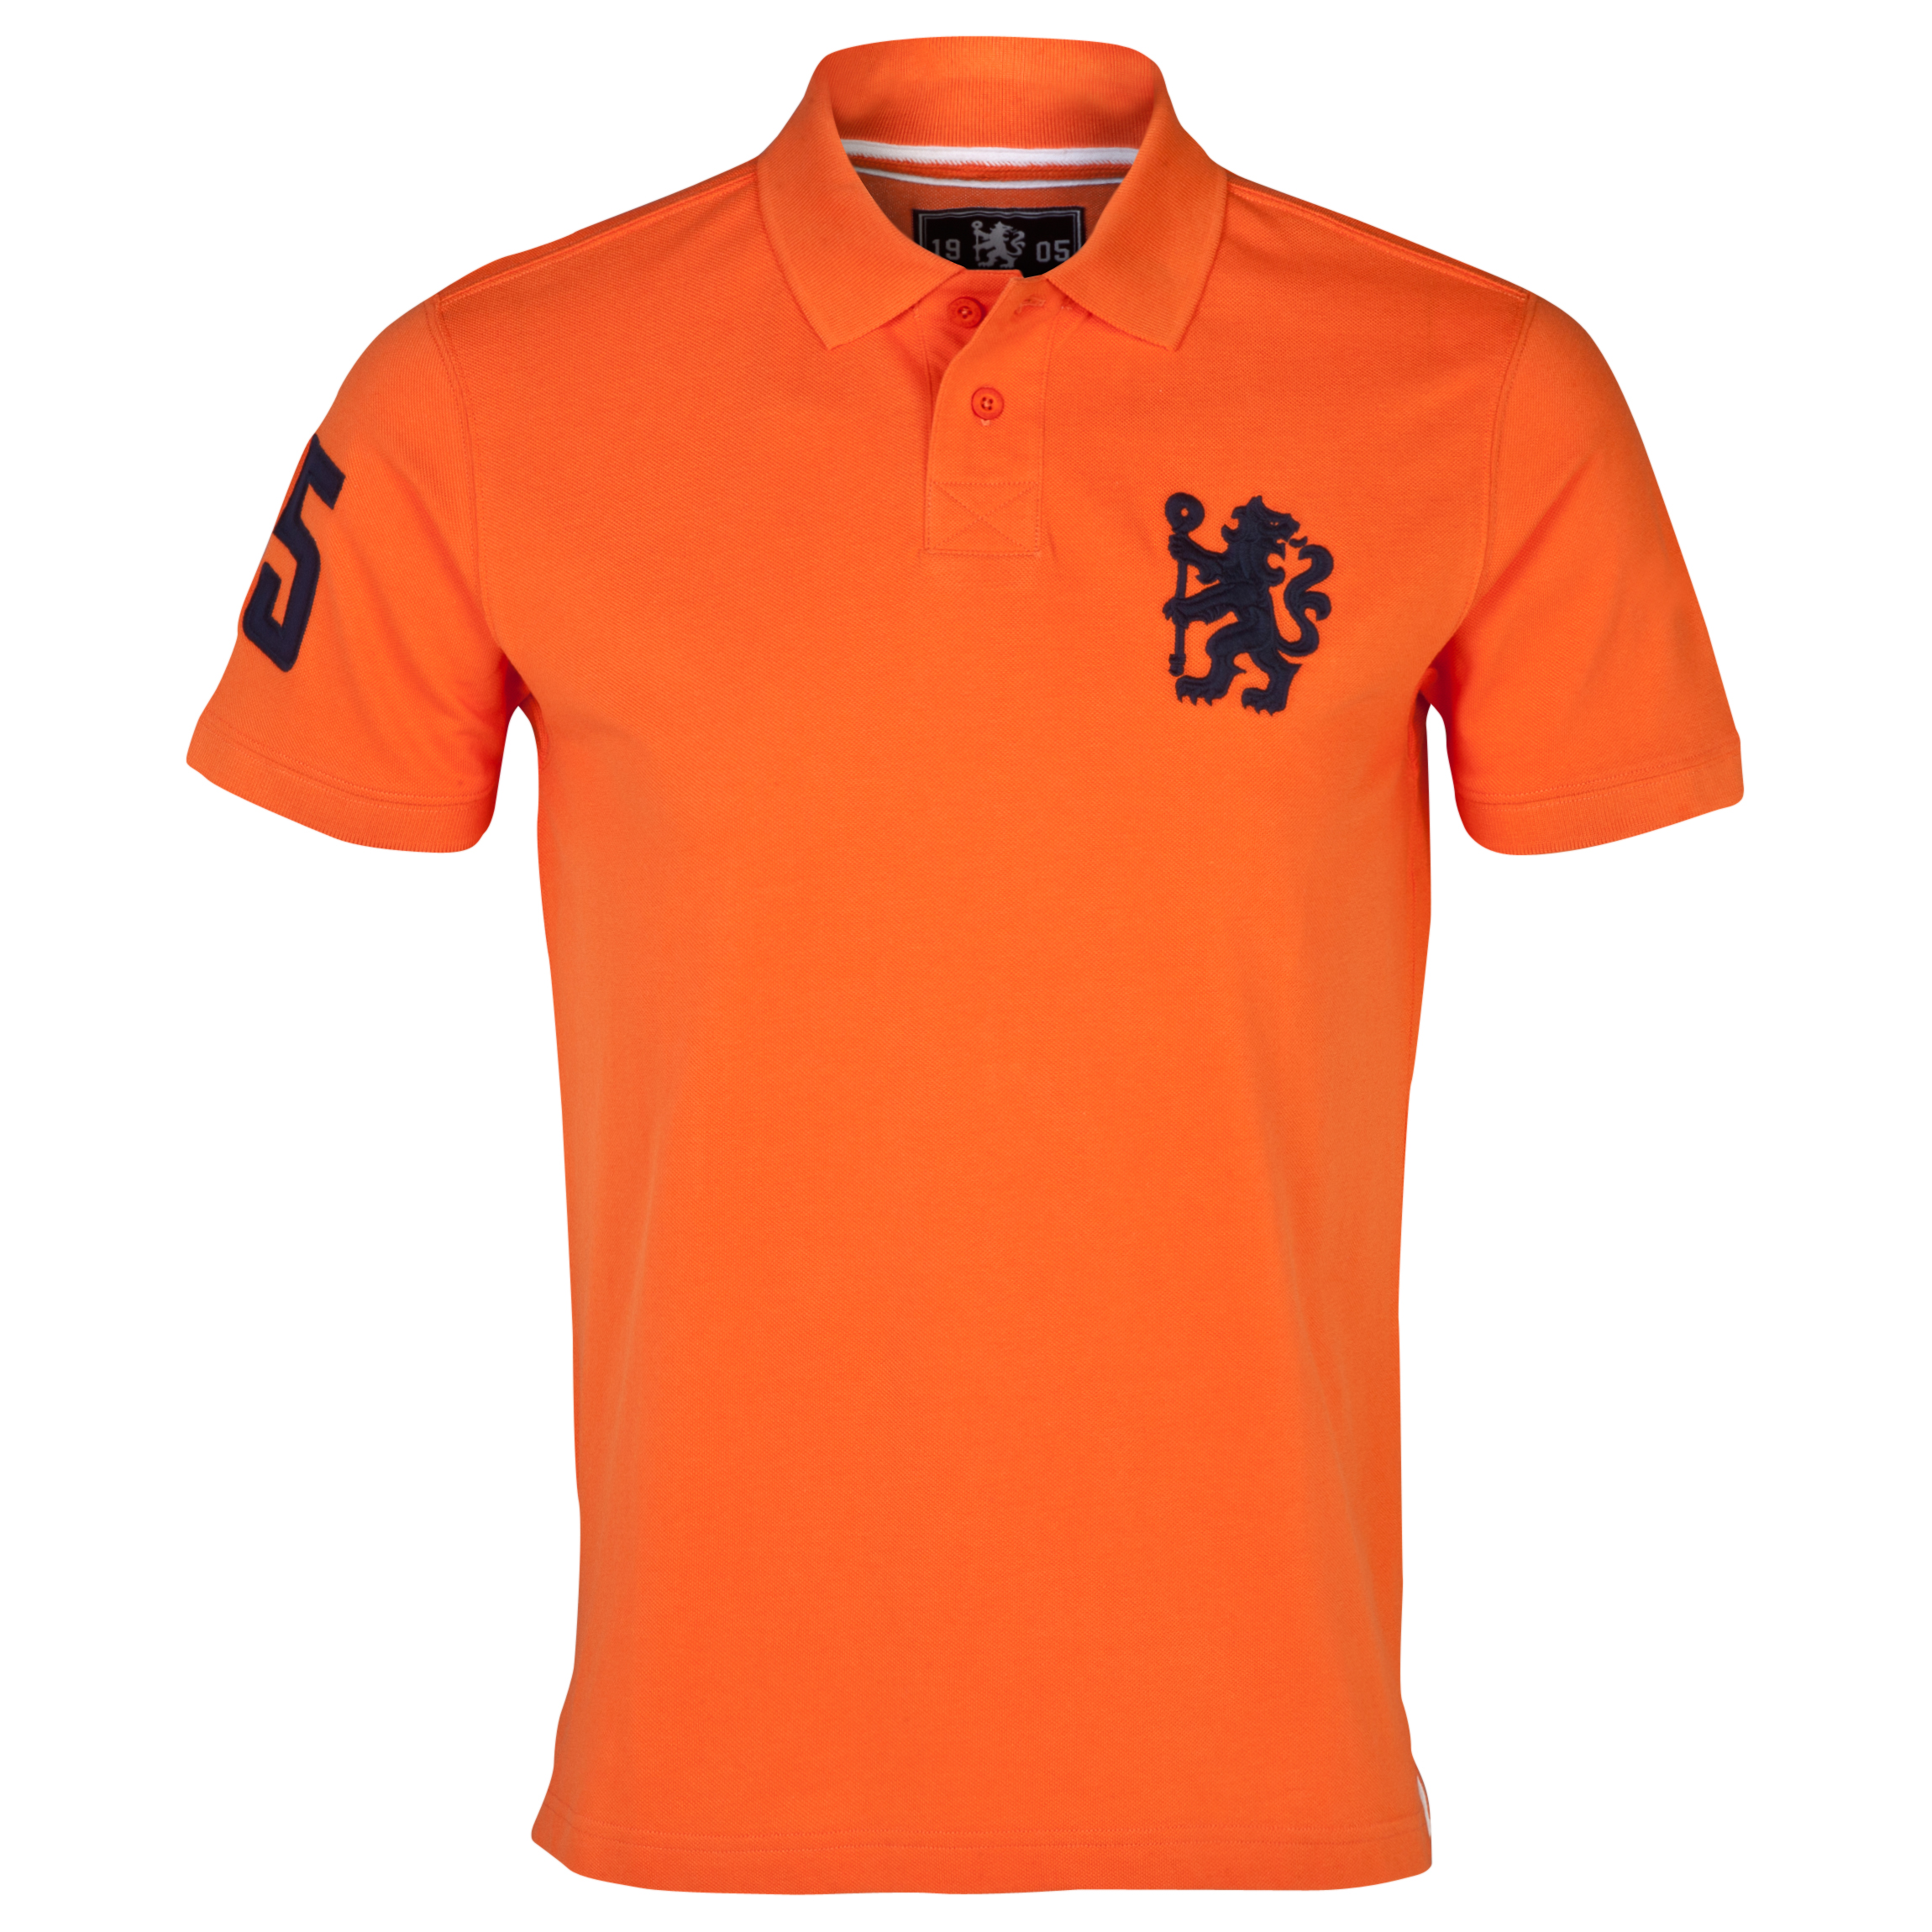 Chelsea Heritage Lion Polo Shirt - Mens